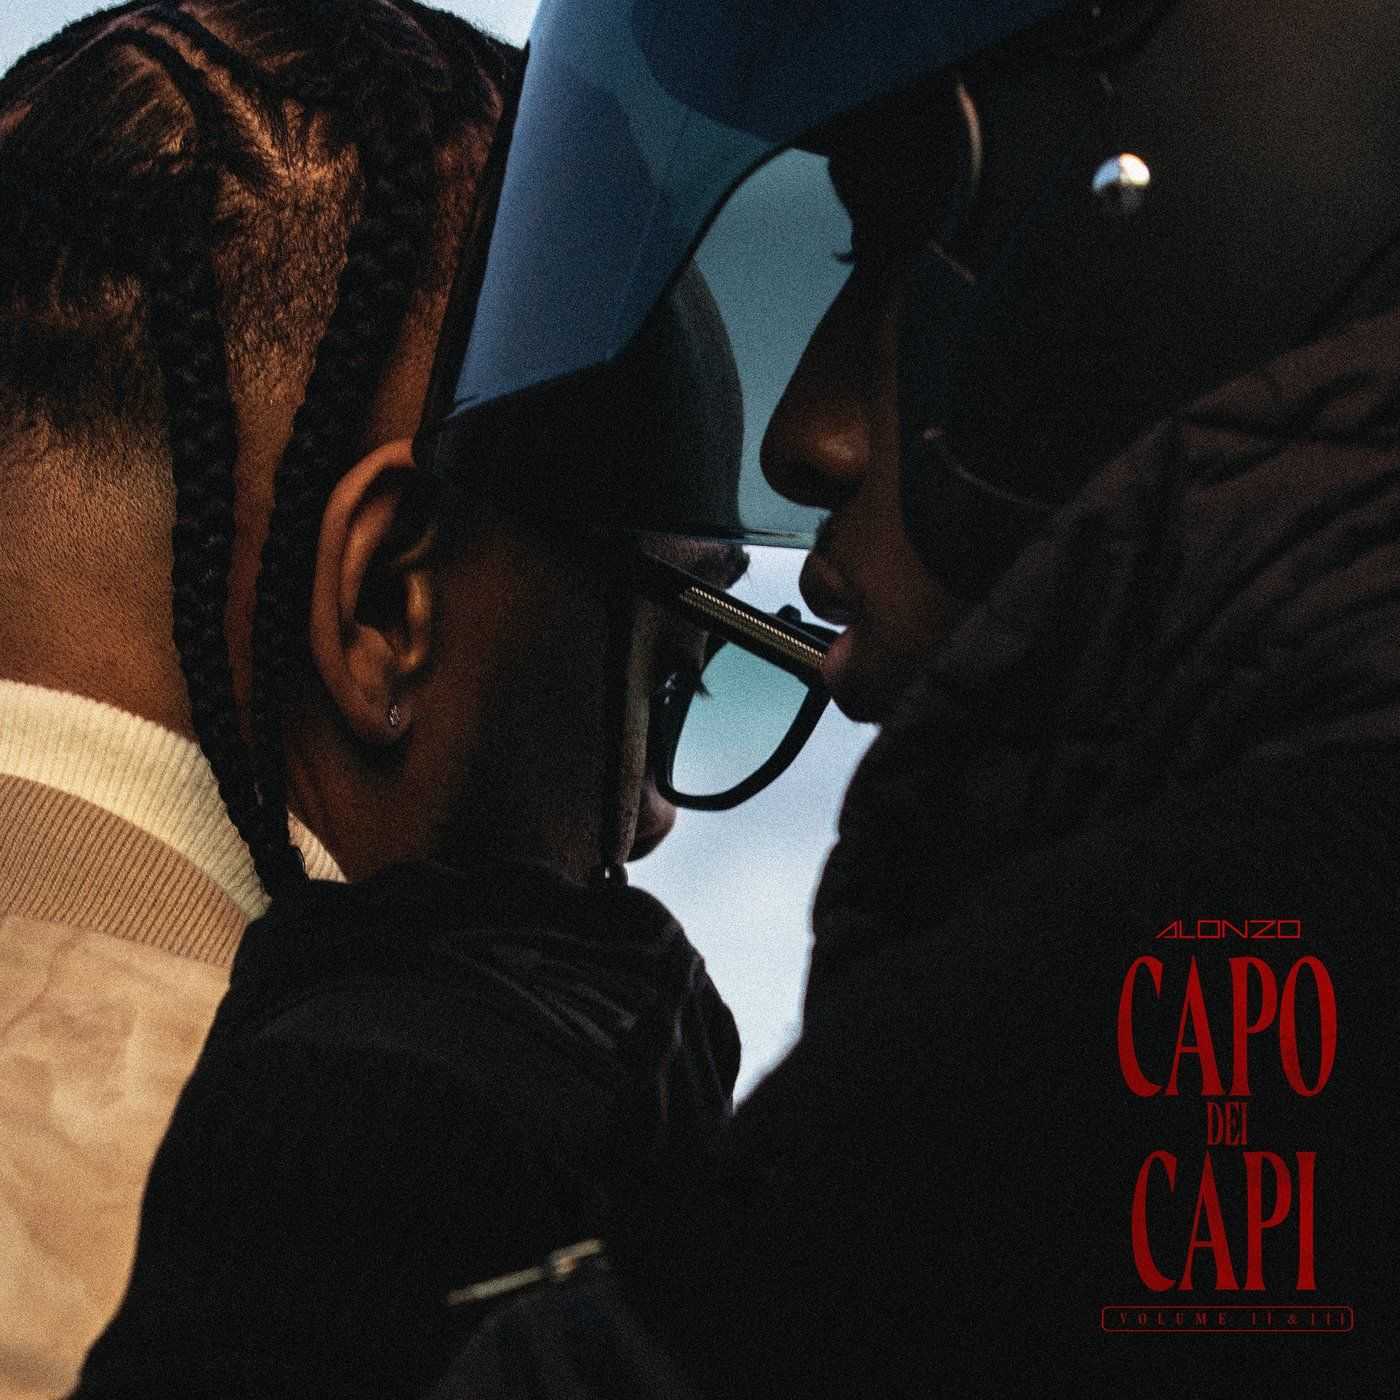 Cover Alonzo - Capo Dei Capi Vol. II et III (Explicit)